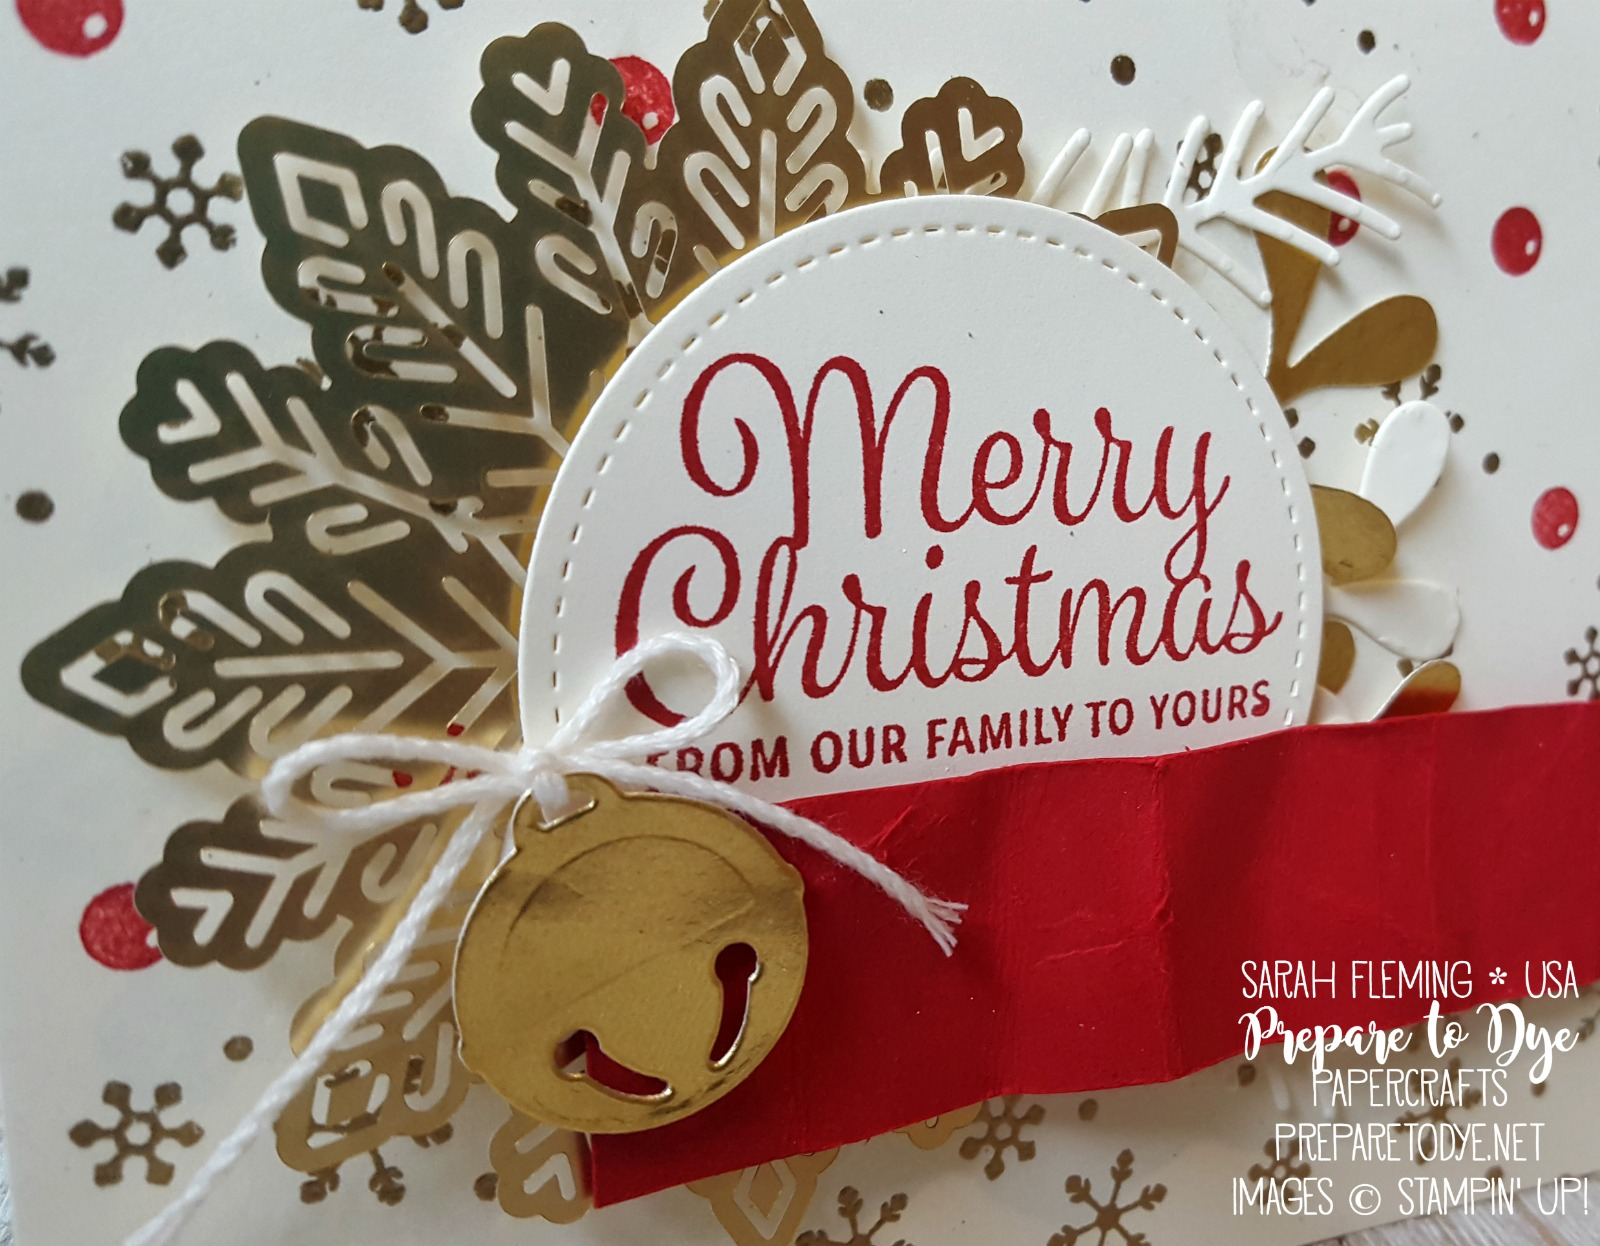 Stampin' Up! Tags & Trimmings bundle with Snowflake Sentiments, Foil Snowflakes - handmade Christmas card - heat embossing - Sarah Fleming - Prepare to Dye Papercrafts